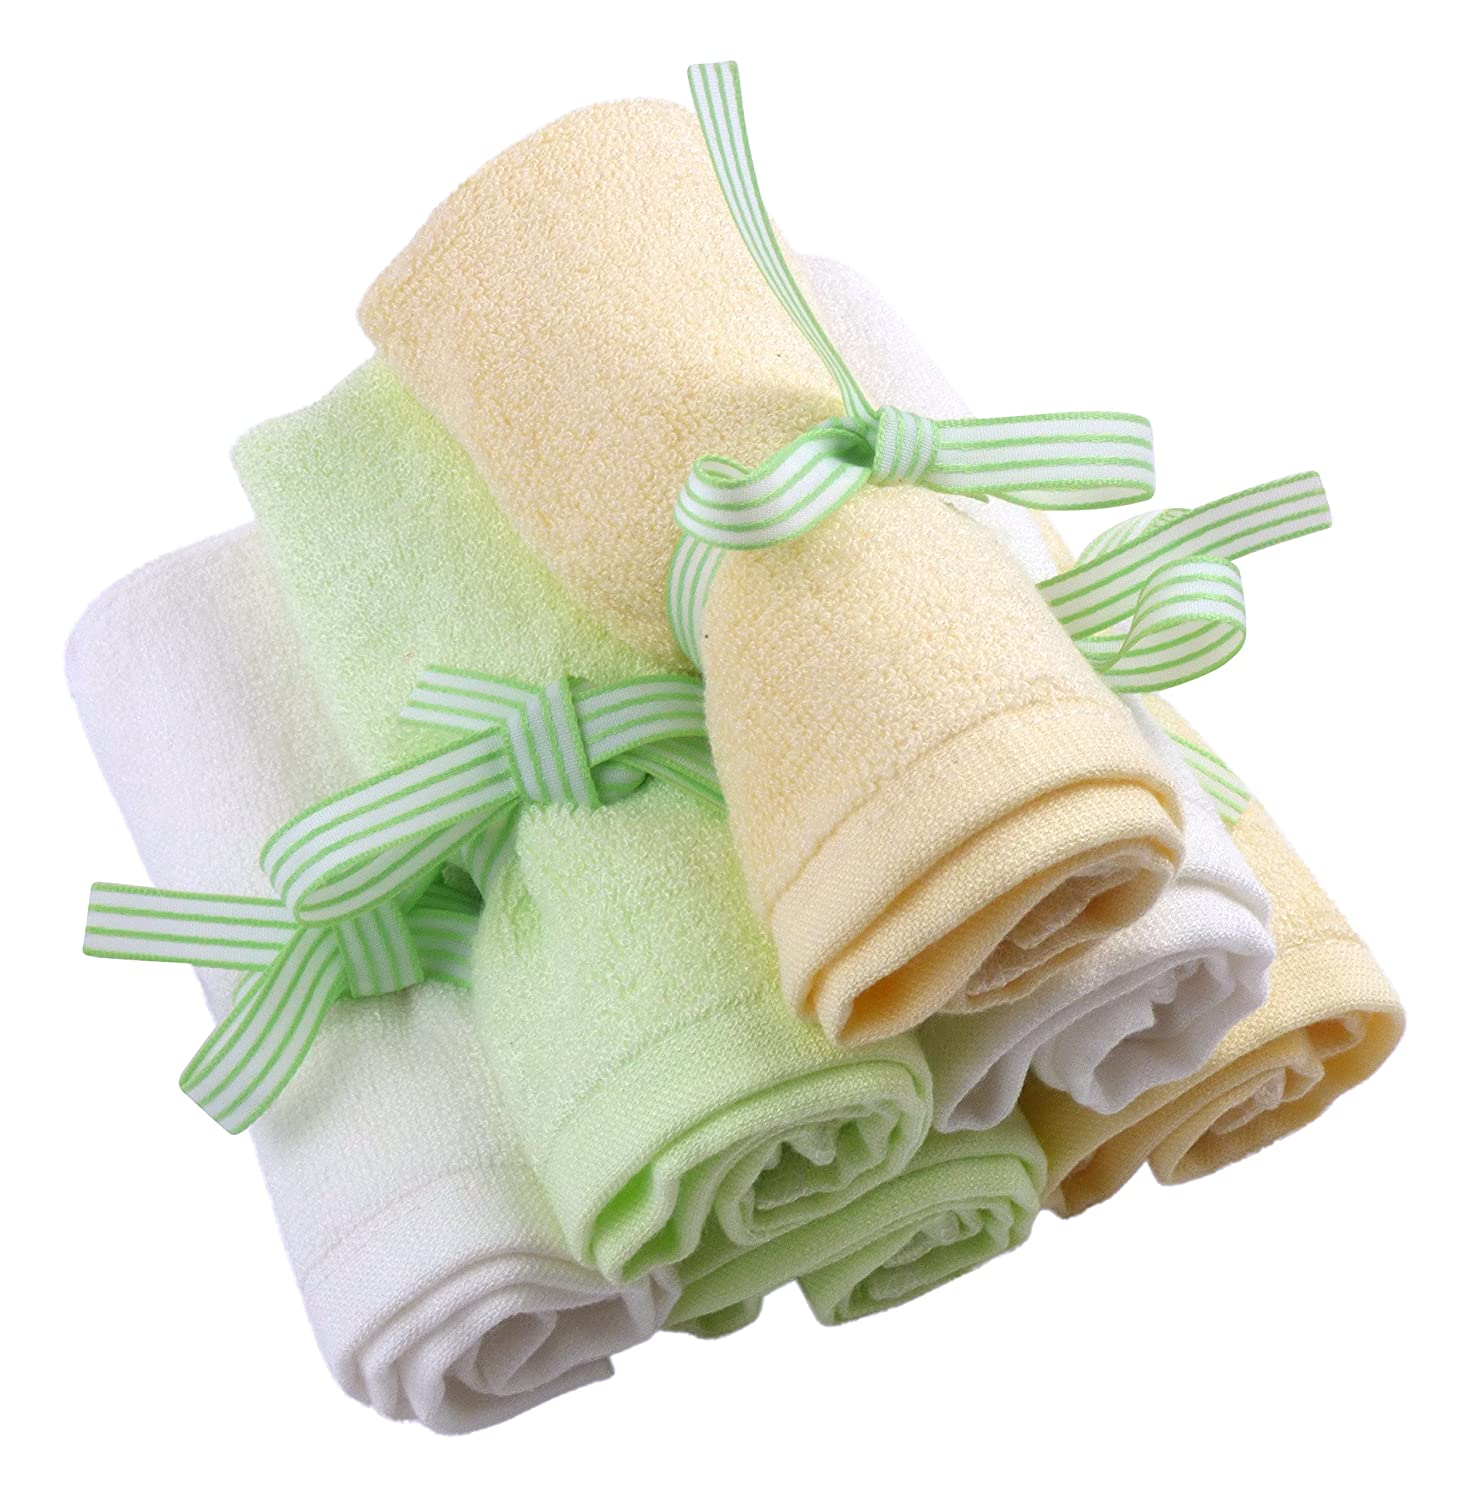 Bamboo Muslin Bringing More Convenience To The People In Their Daily Life High Quality Supersoft Multipurpose/baby Bamboo Muslin Square..